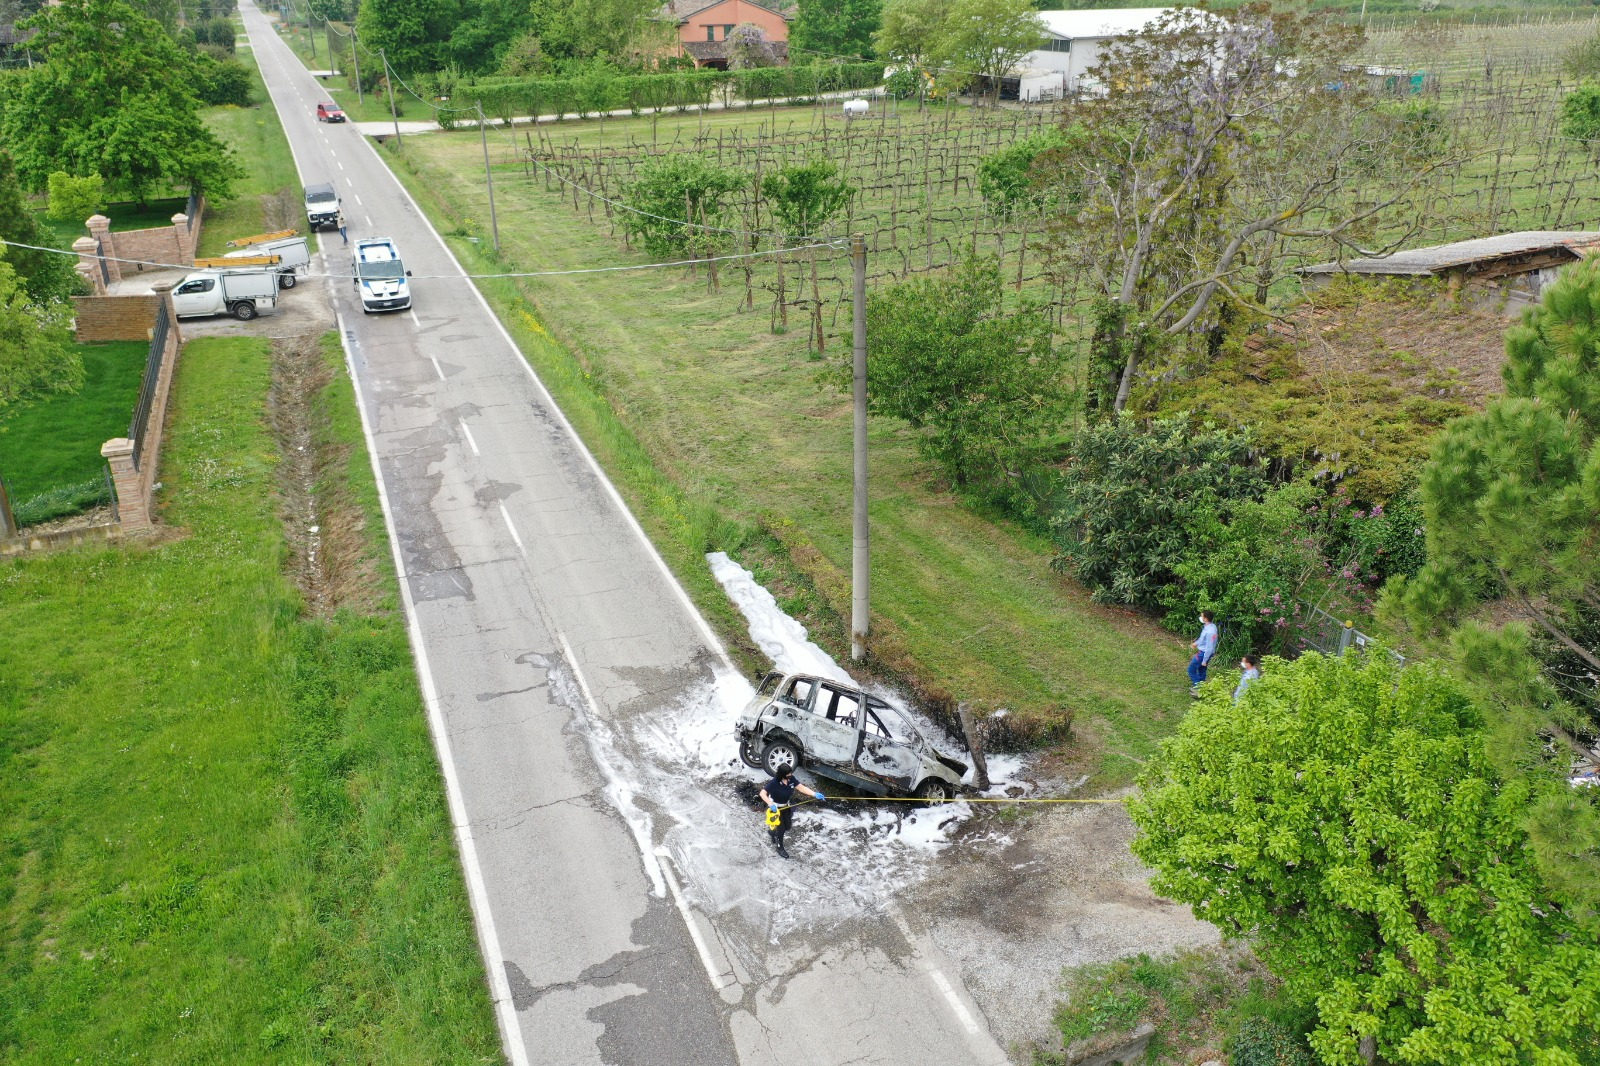 incidente stradale con auto incendiata